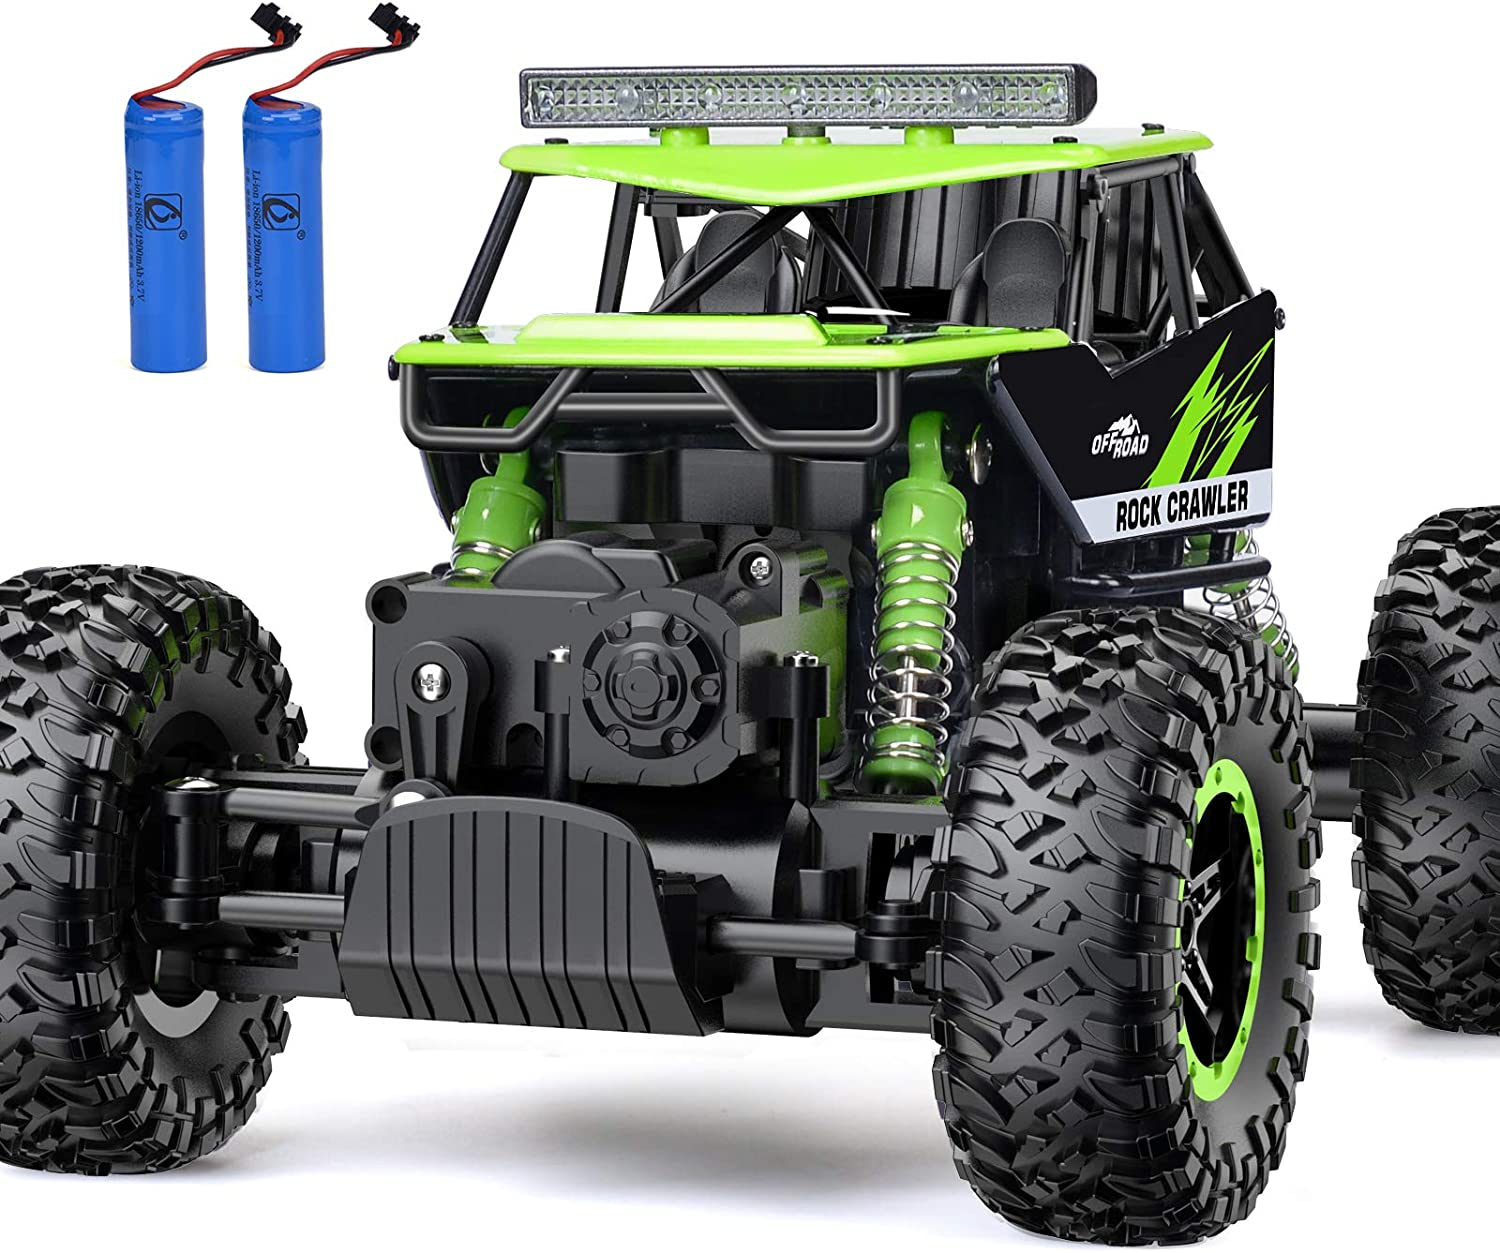 Rc Car Nqd Remote Control Monster Truck 2 4ghz 4wd Off Road Rock Crawler Vehicle 1 16 All Terrain Rechargeable Electric Toy For Boys Girls Gifts Toys Games Amazon Com